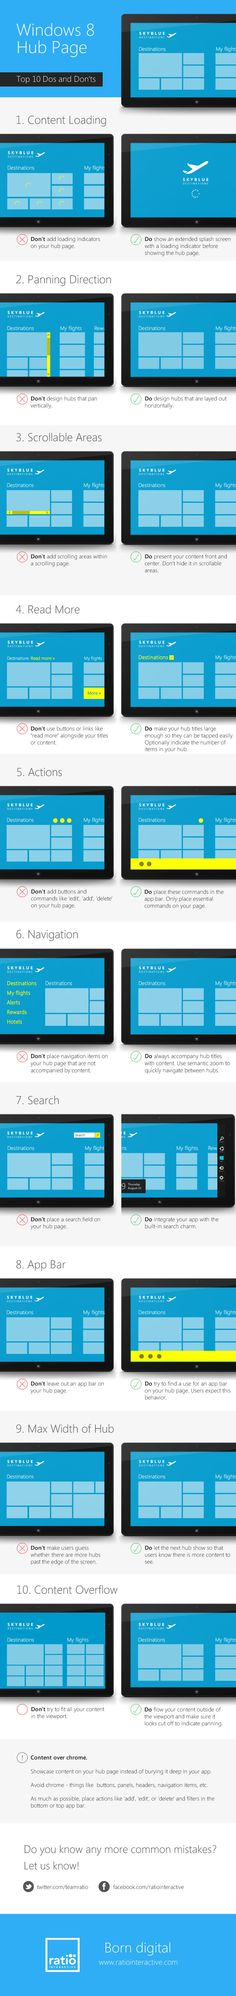 Windows 8 Hub Pages: Top 10 Dos and Don'ts UX lessons from tablet design Ui System, Ux Wireframe, Mobiles, Web Design, Flat Design, Ios, Ui Patterns, Information Architecture, Mobile Ui Design